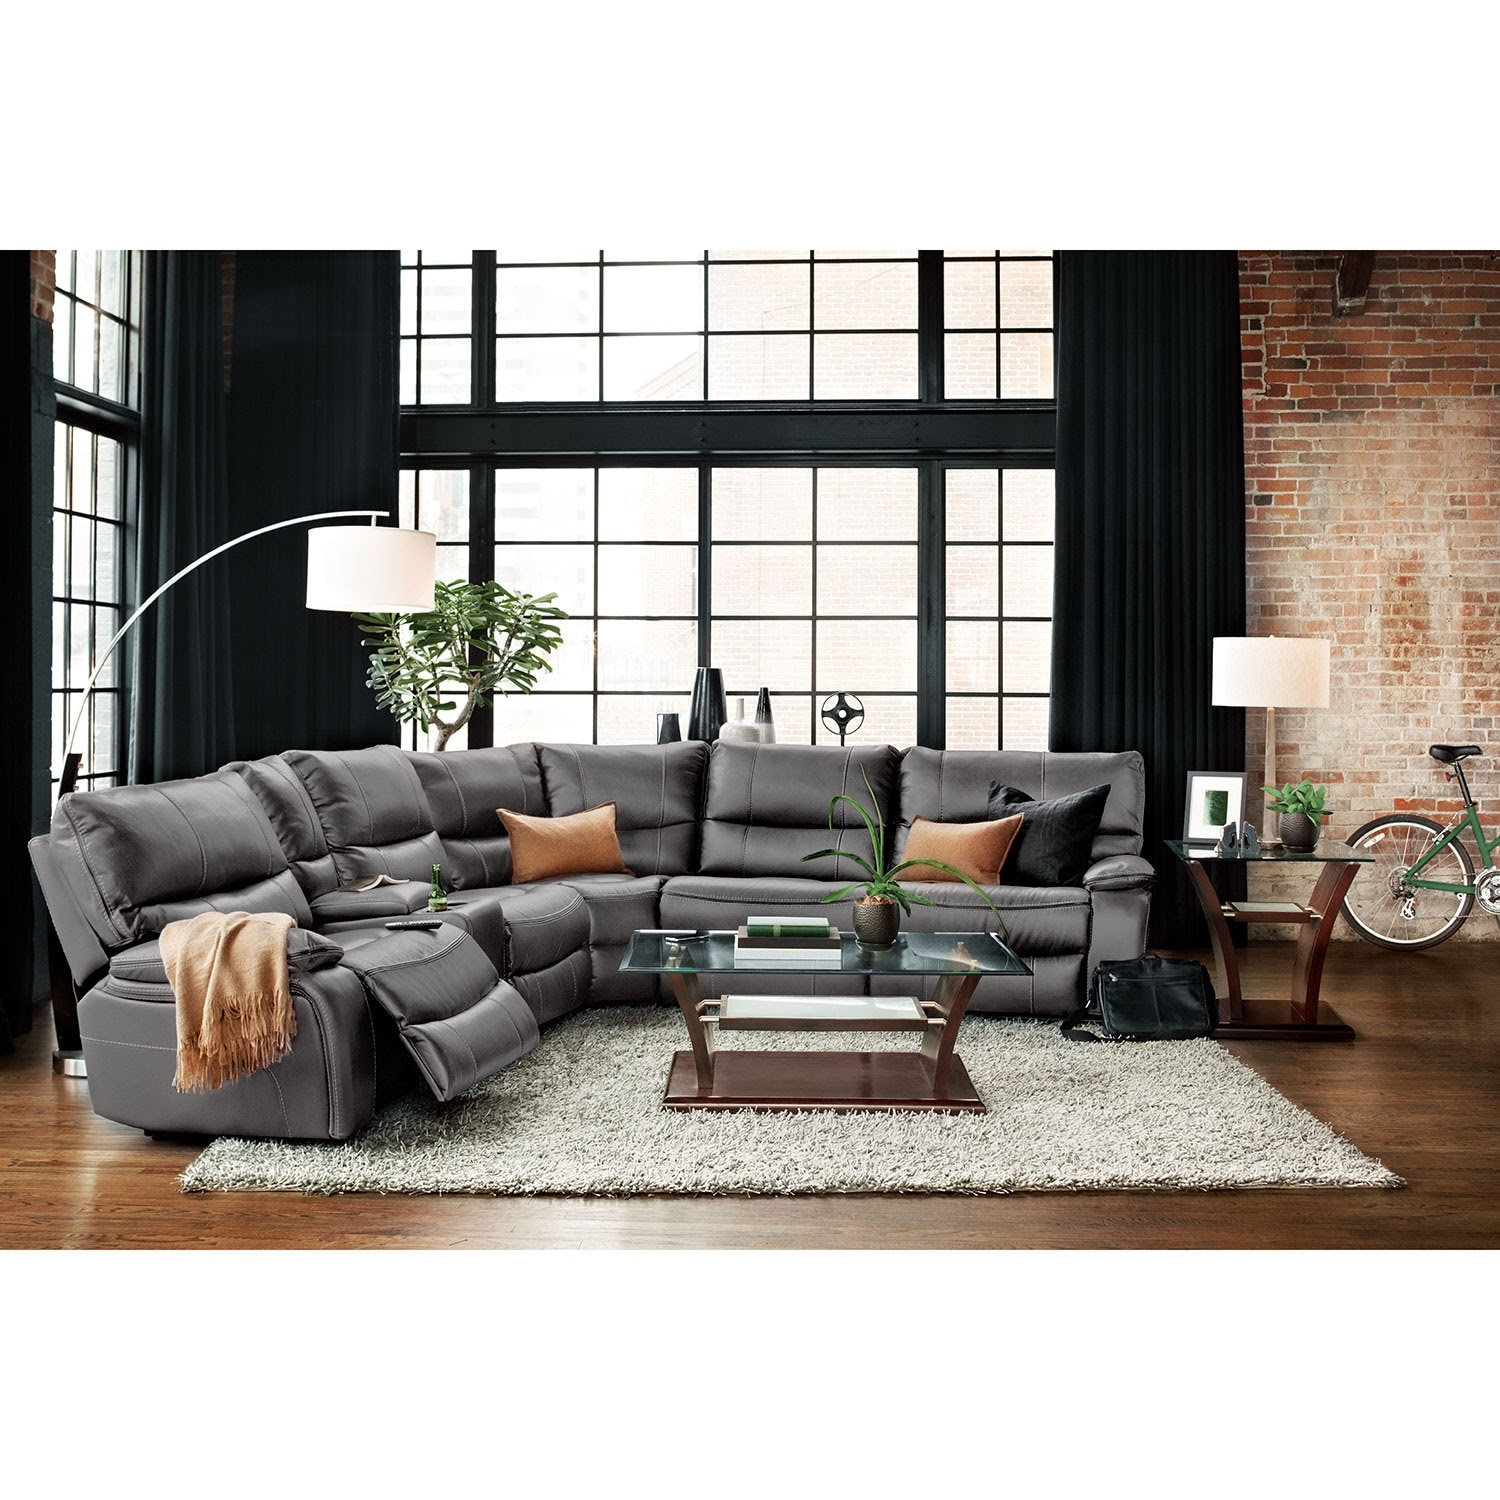 Living Room Furniture Orlando | Living Room